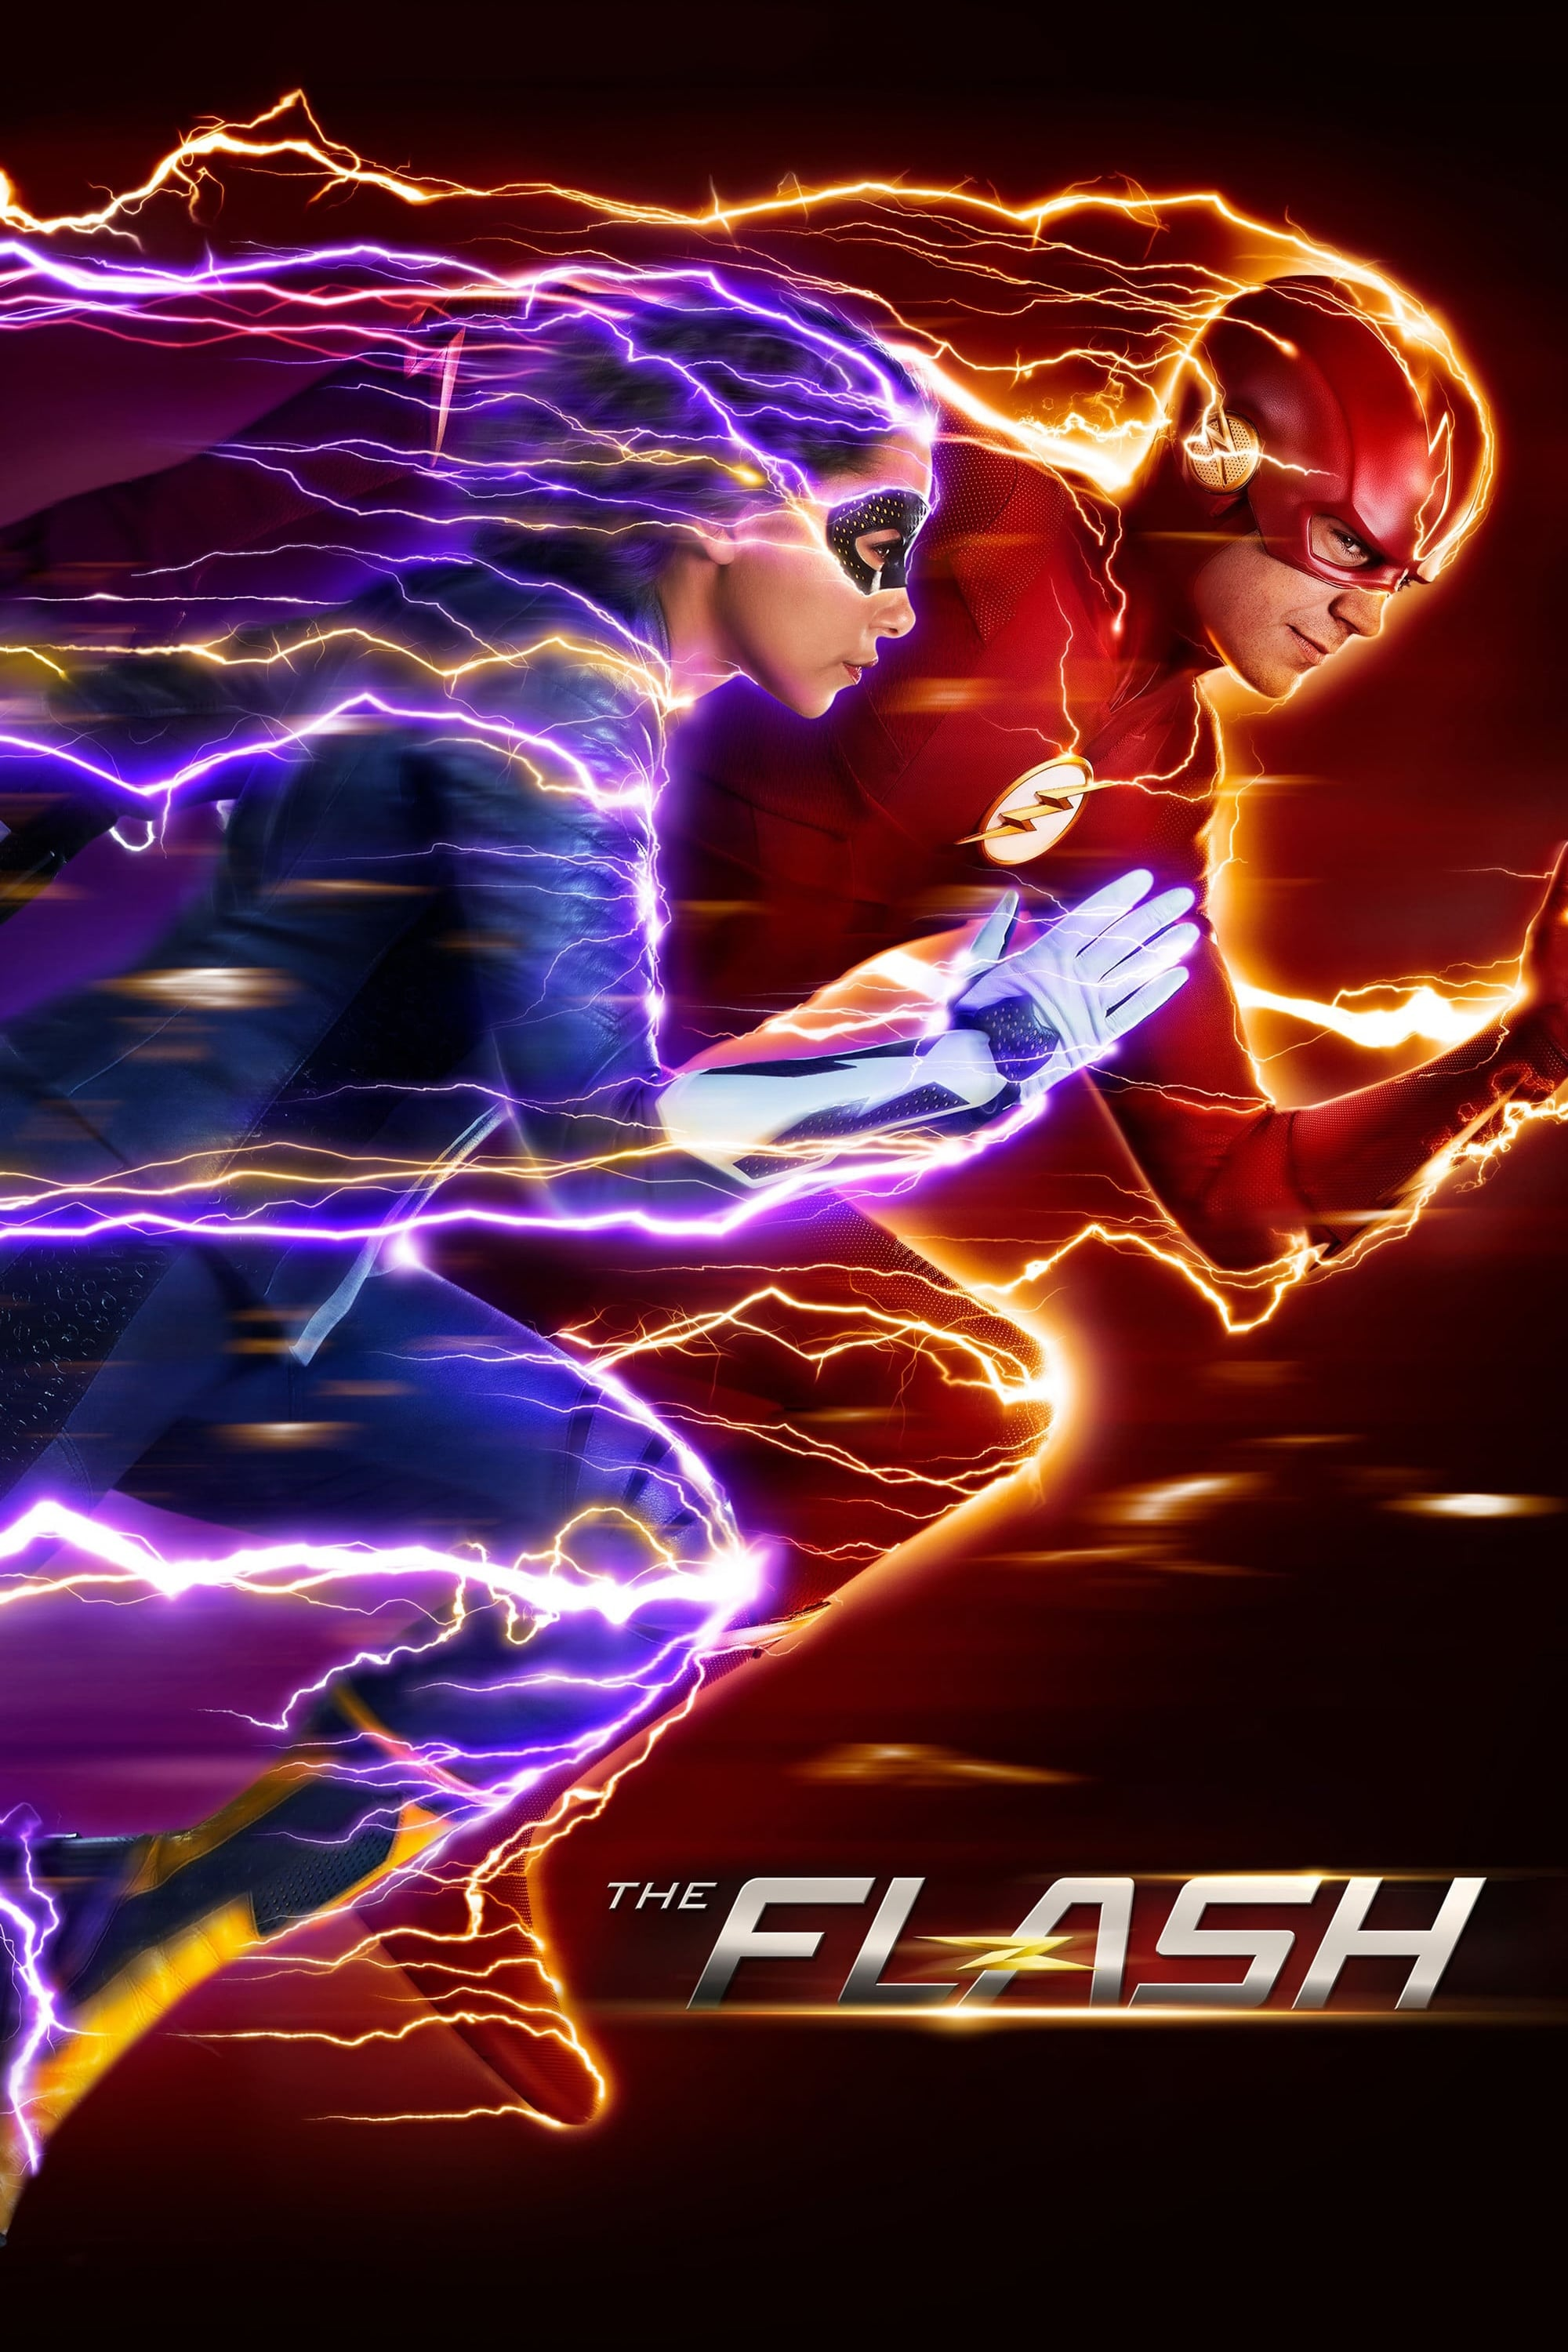 The Flash 5ª Temporada (2018) Torrent - WEB-DL 720p e 1080p Dublado / Dual Áudio e Legendado Download